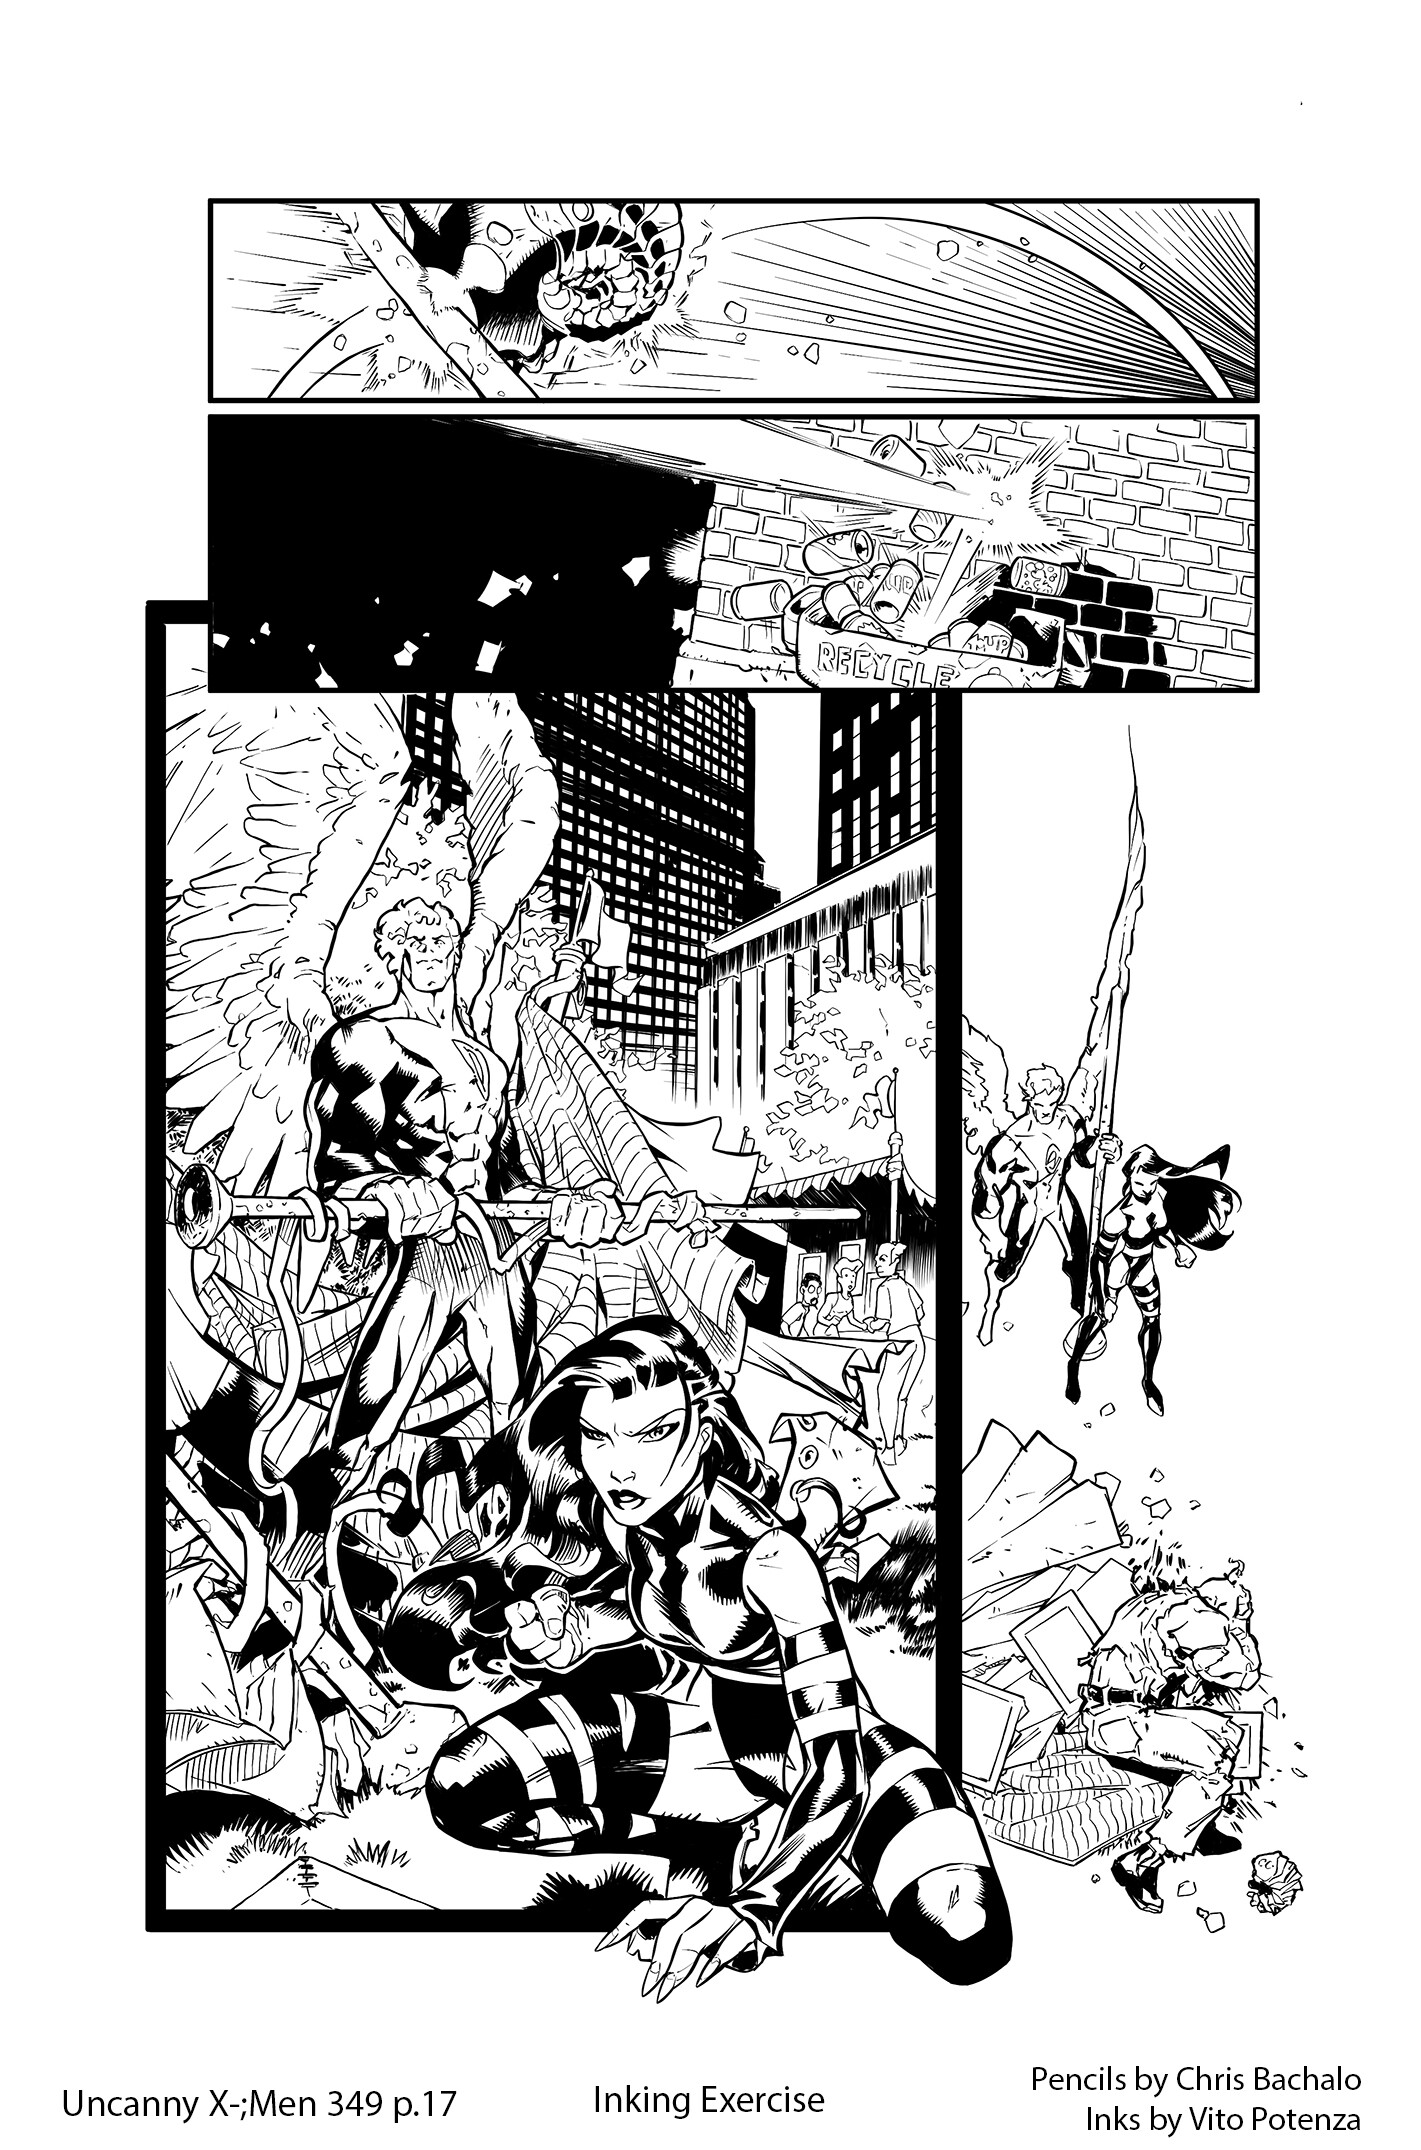 Uncanny X-Men #349, page 17 – Inking Exercise